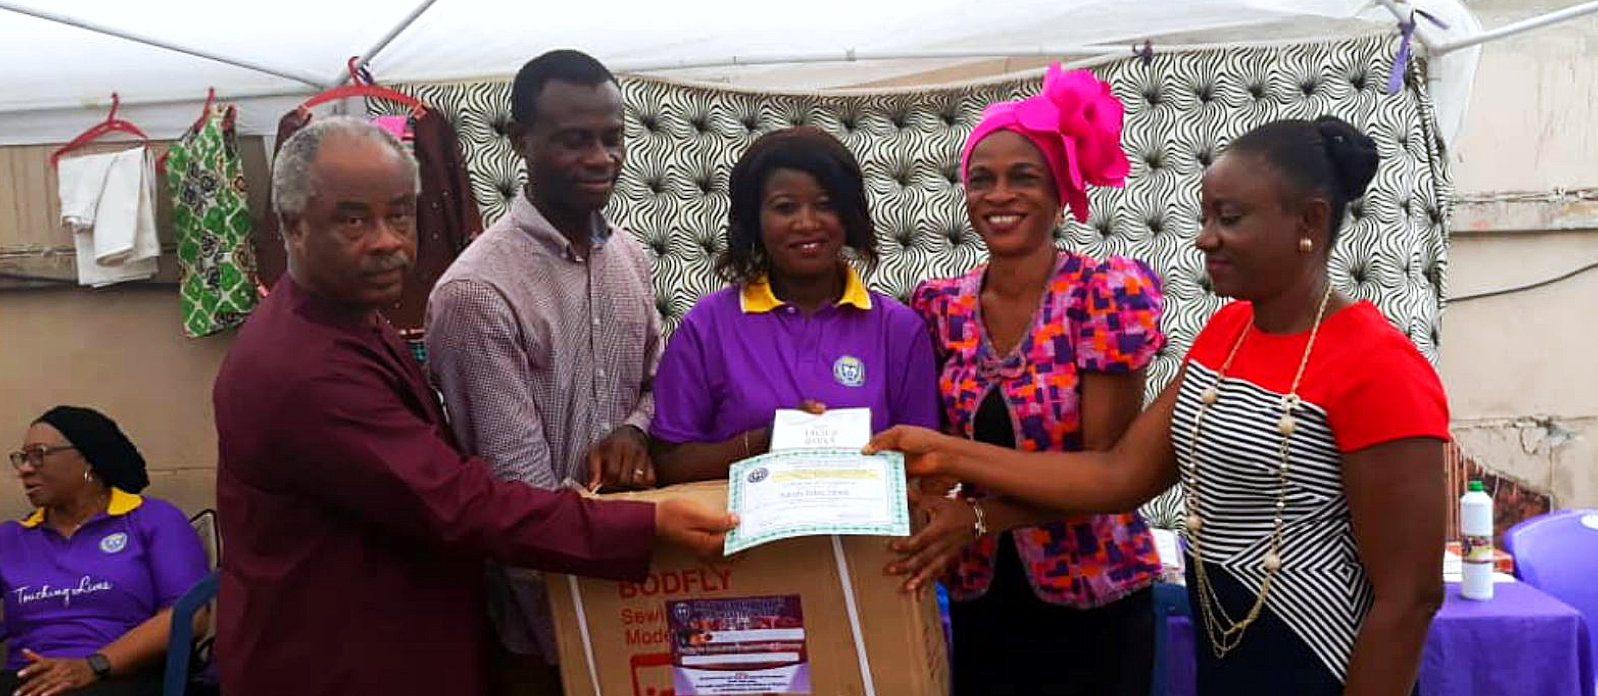 lady given a recognition certicate and award